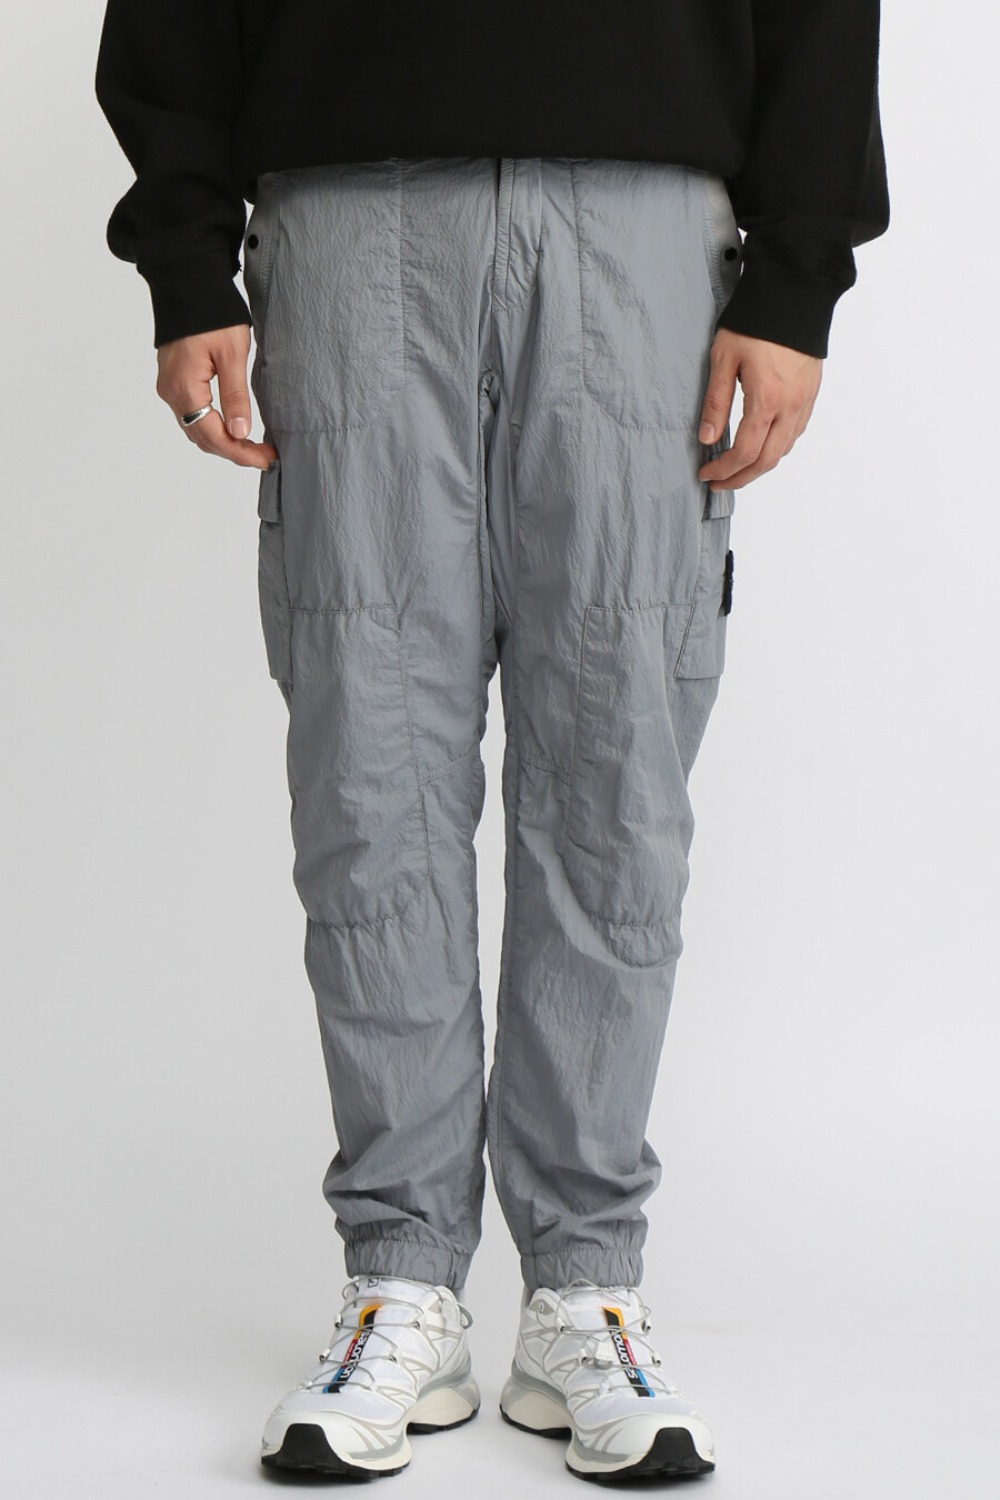 S.I.PA/PL SEERSUCKER-TC CARGO PANTS(32029) GREY